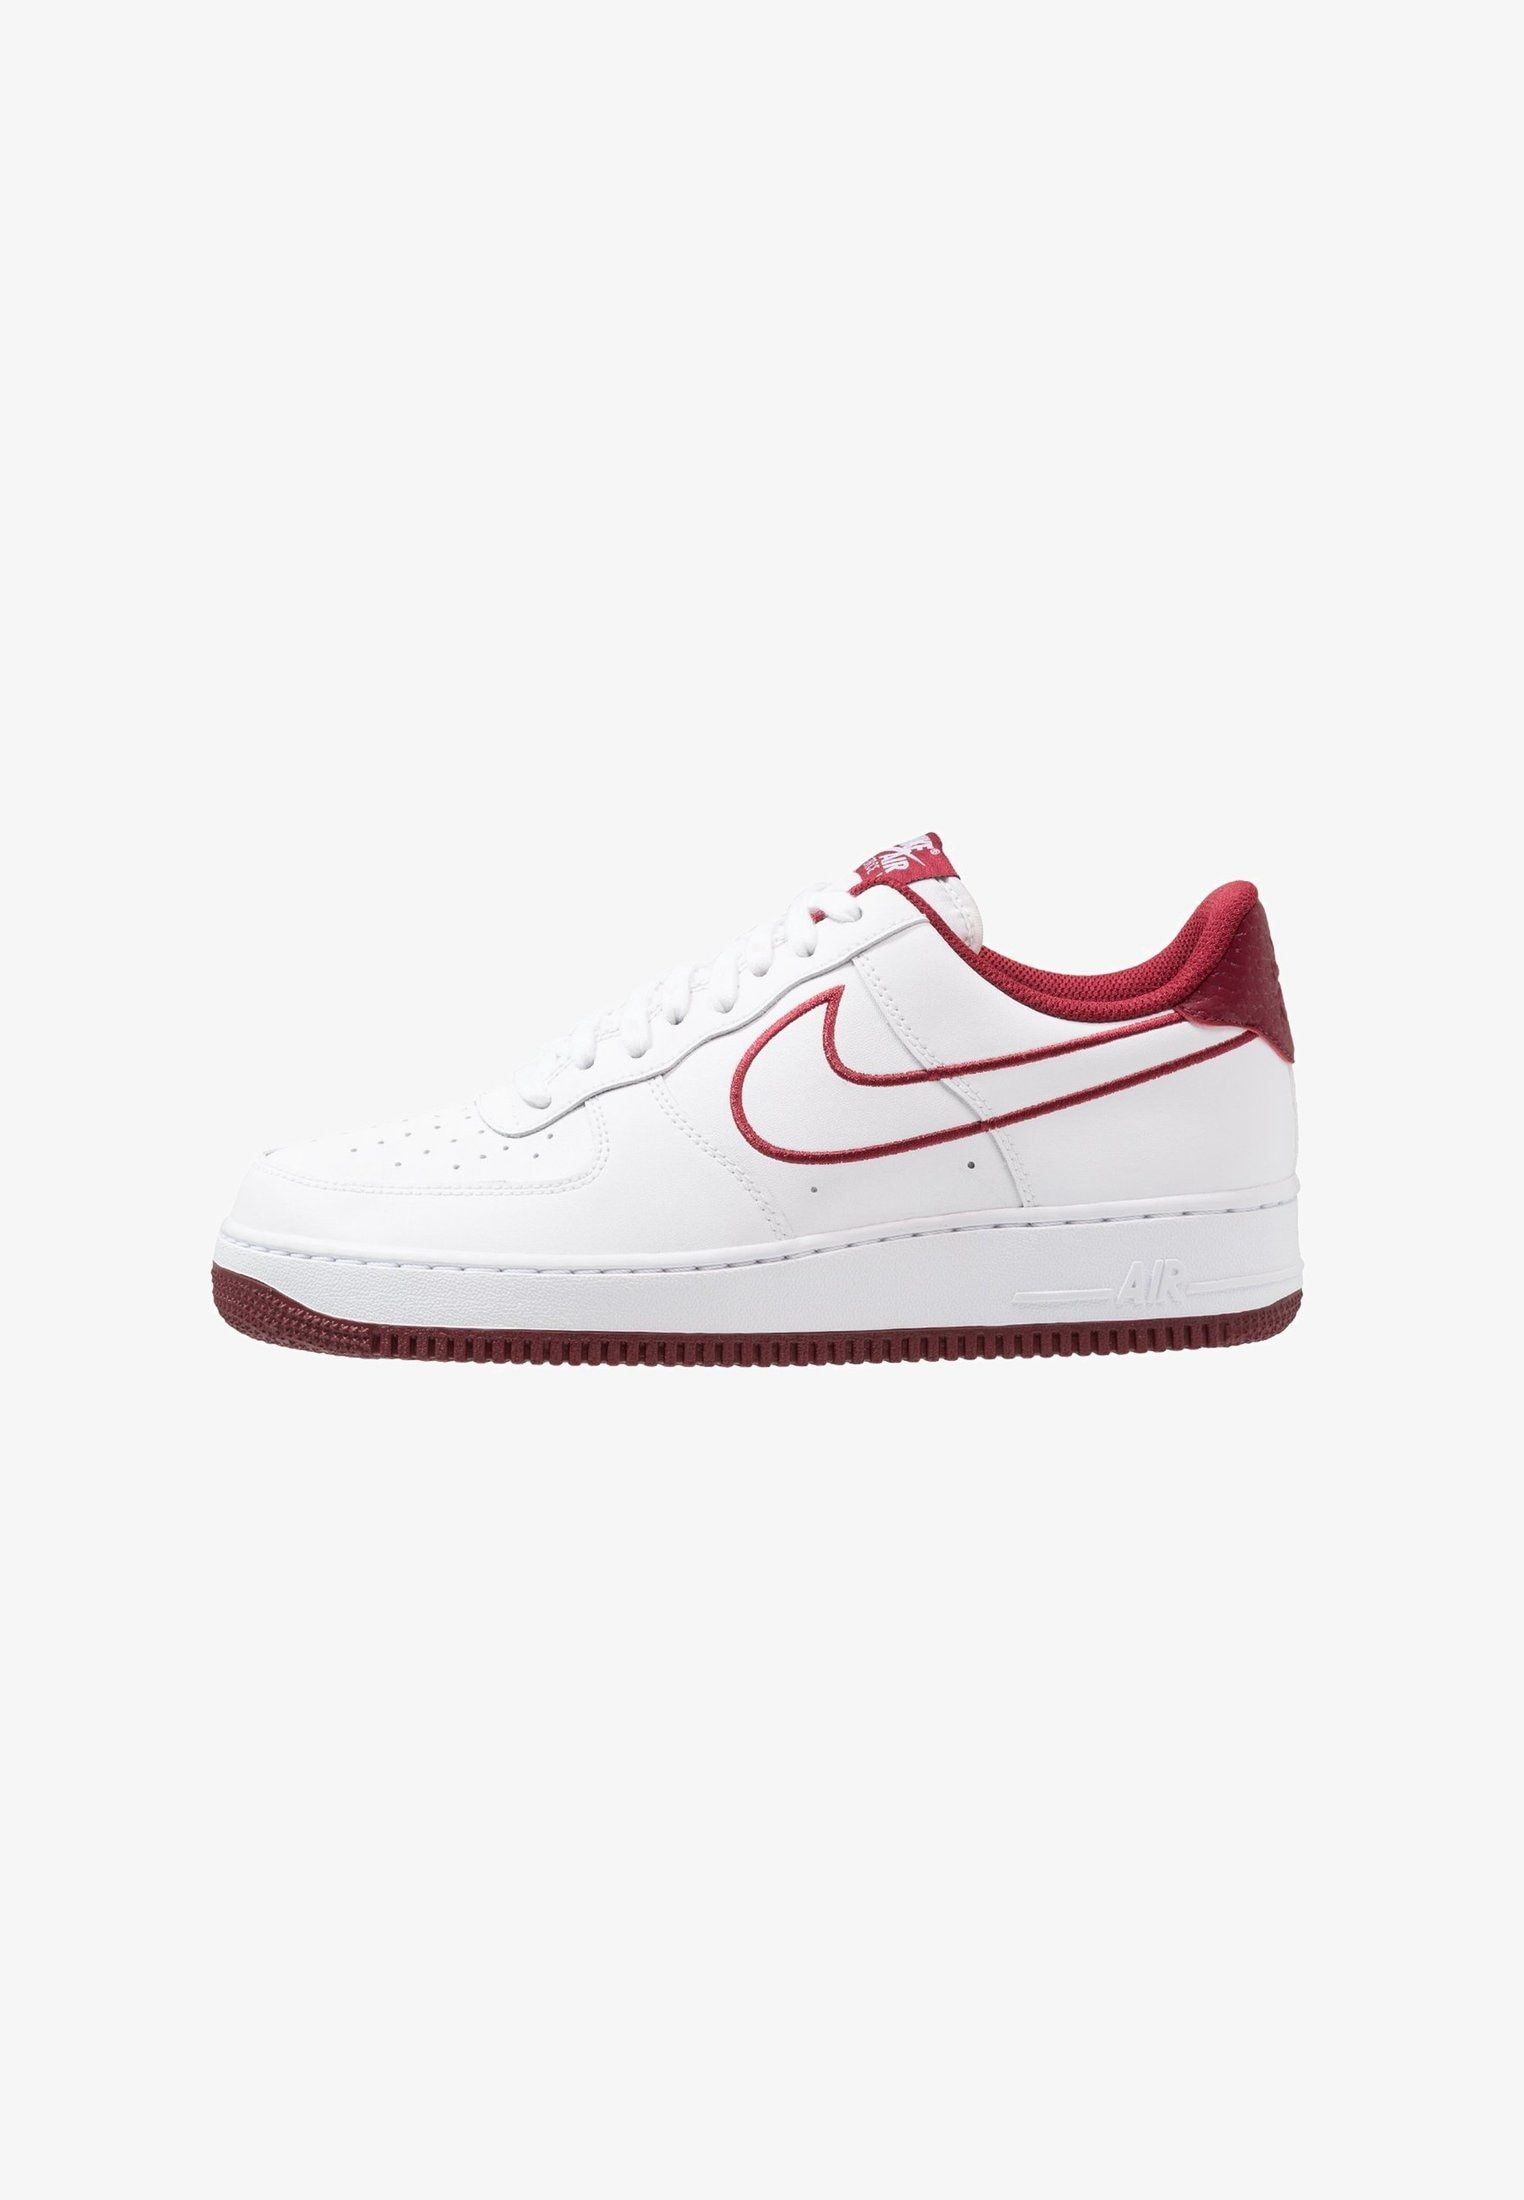 grand choix de a73db 47d3a AIR FORCE 1 07 - Sneaker low - white/solar red/granite/dust ...